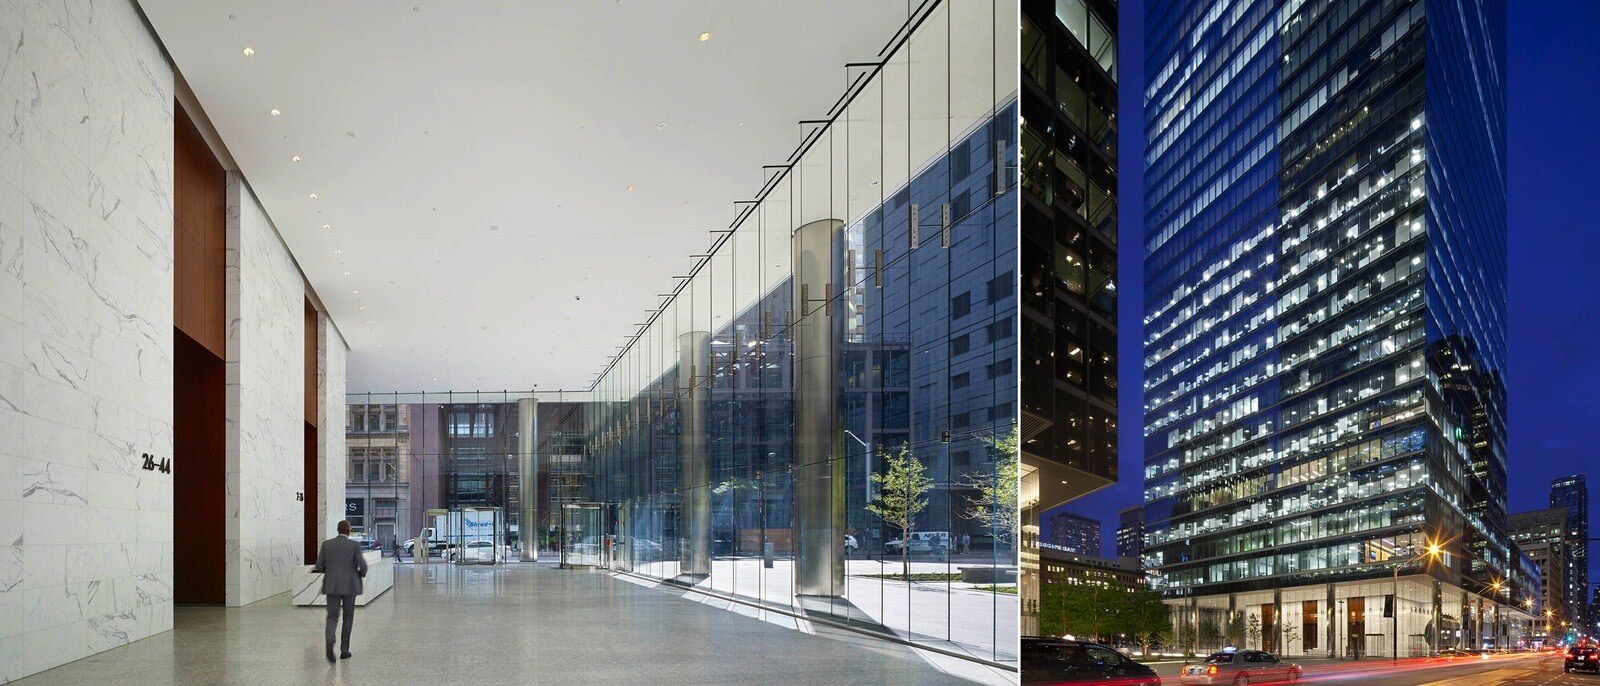 A man walks down a lobby and a separate shot of the building at night.